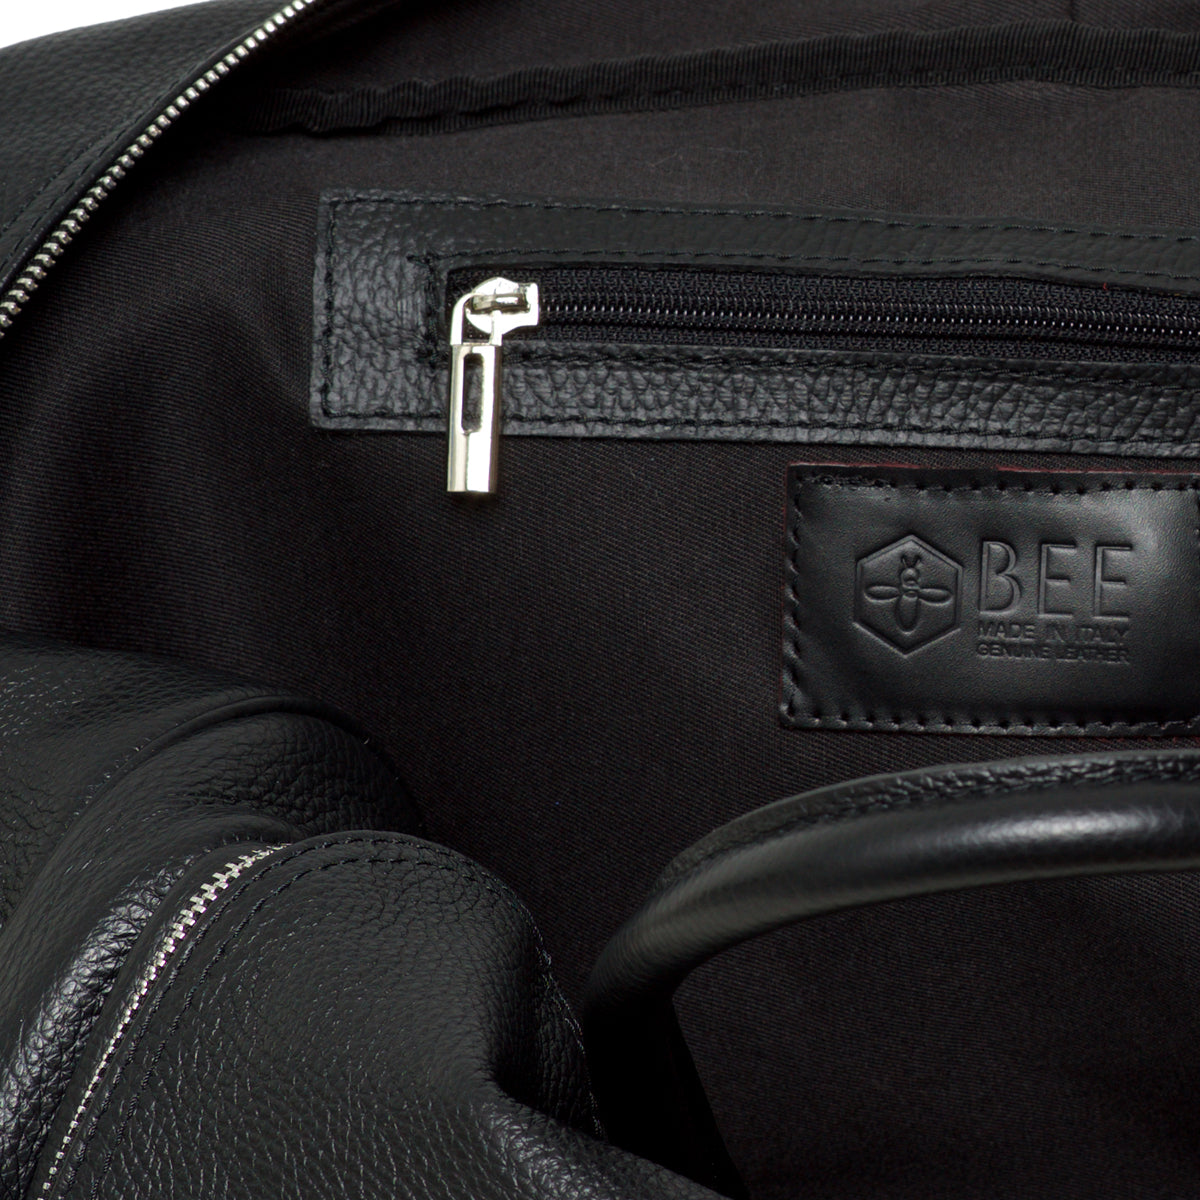 Greta Duffle Black - Leather duffle bag